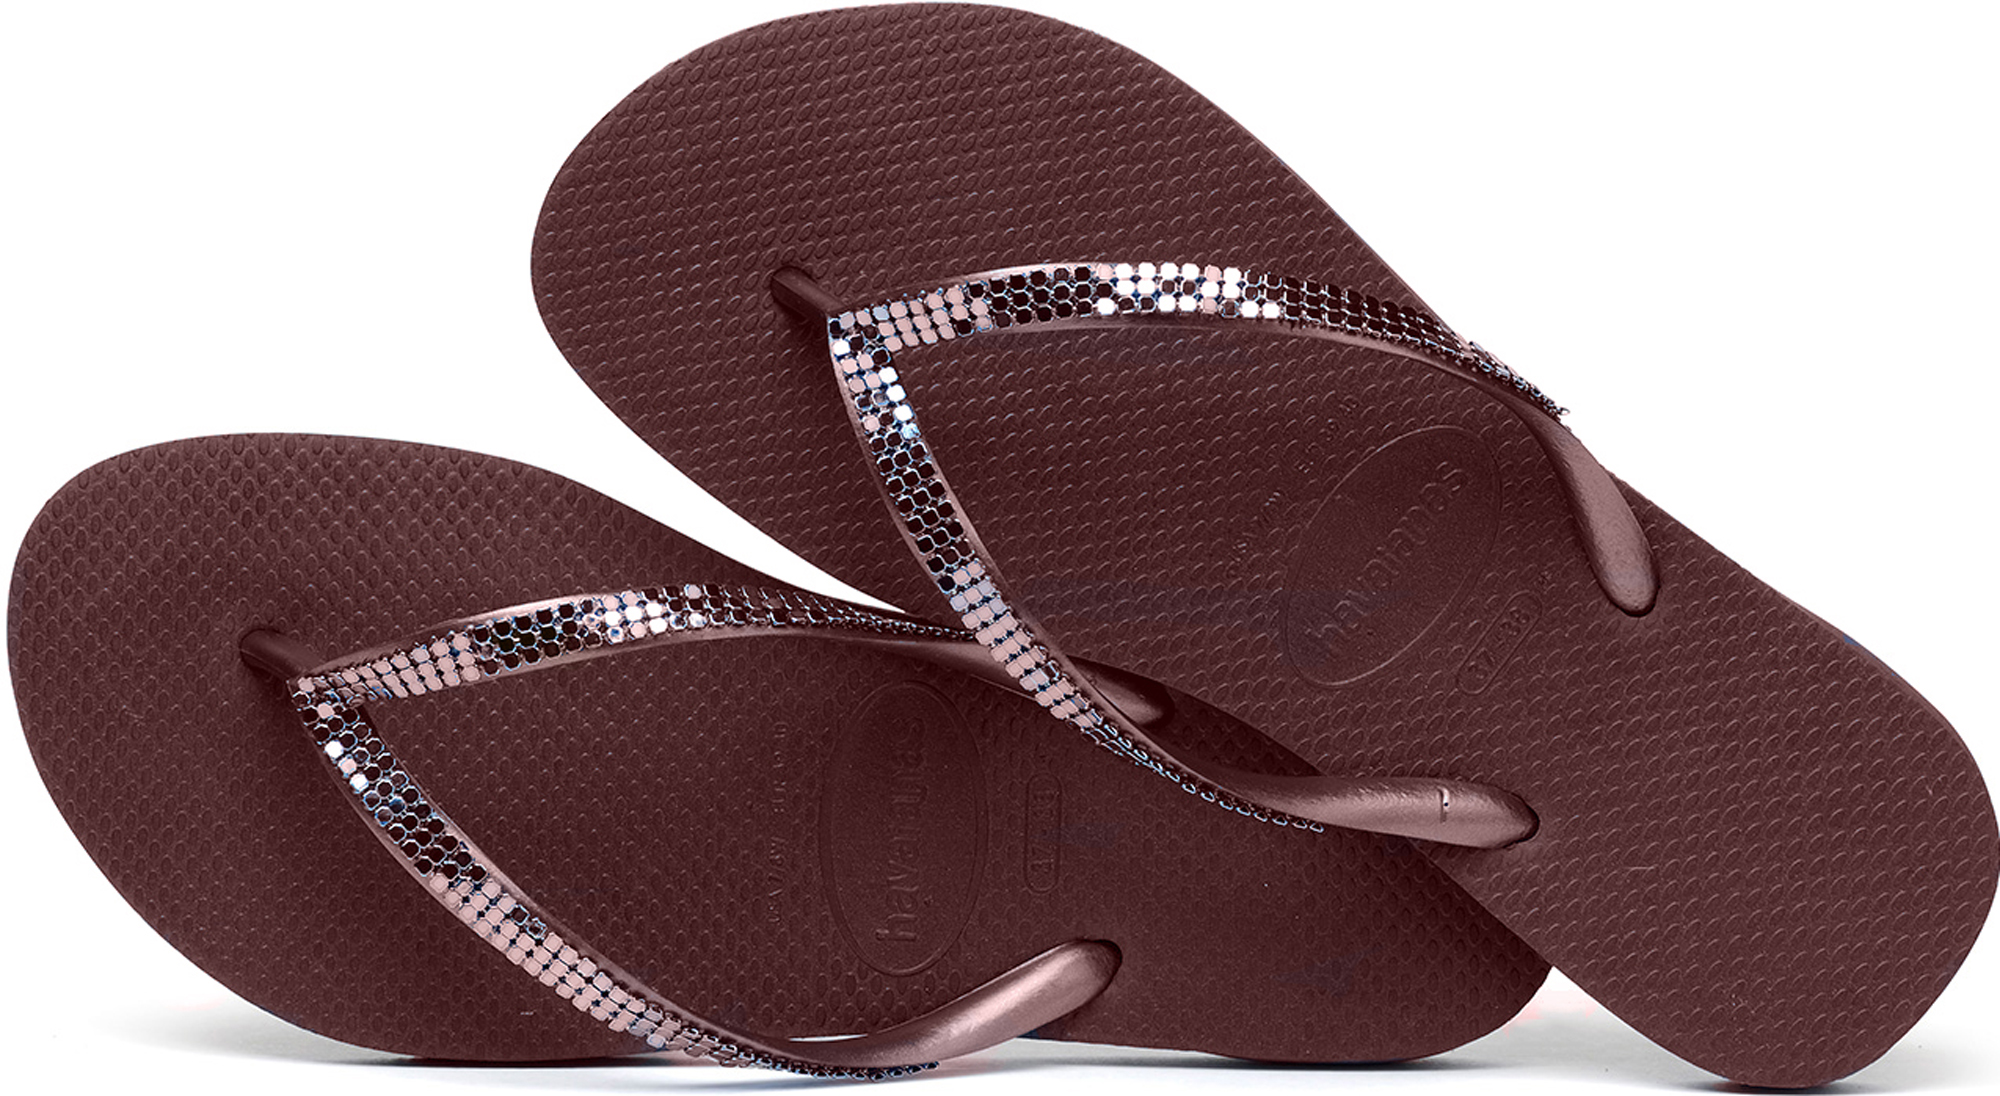 1f63fd3f3c3 Havaianas Slim Metal Mesh Women s Flip Flops. Uk8 Grape Wine 8. About this  product. Picture 1 of 5  Picture 2 of 5  Picture 3 of 5 ...